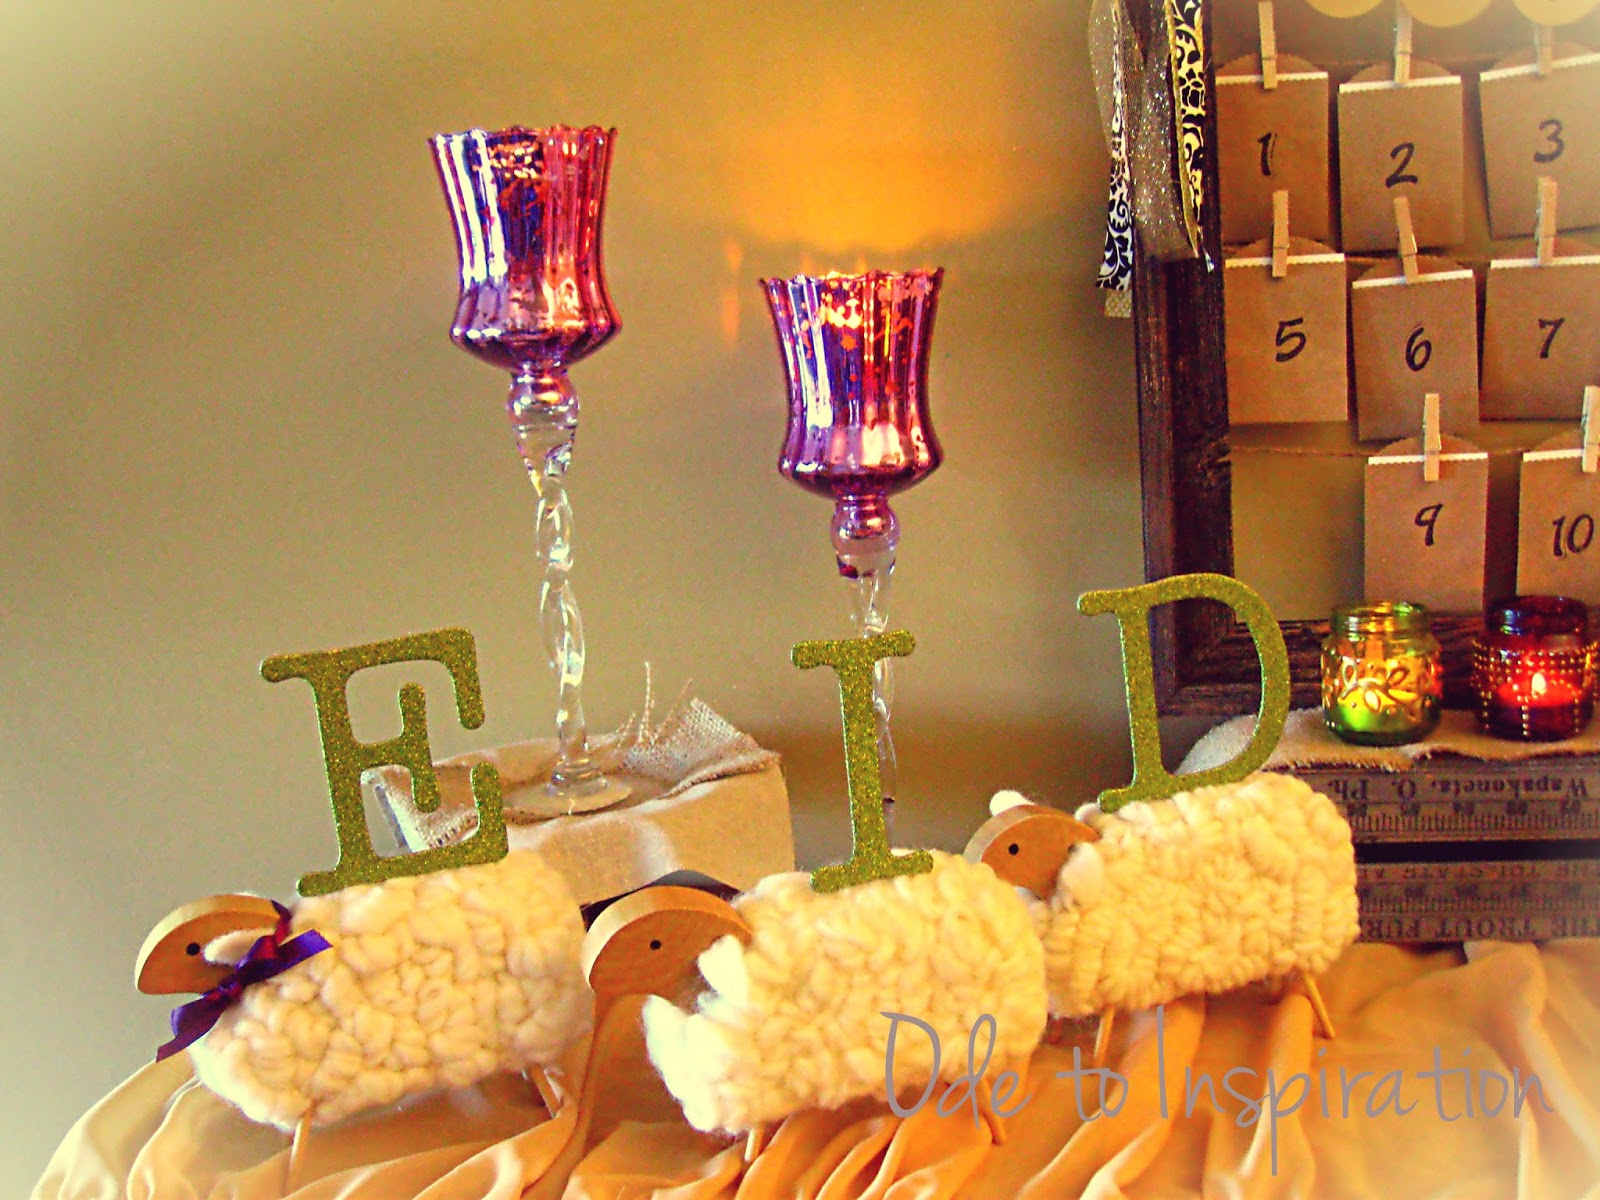 Most Inspiring Festival Eid Al-Fitr Decorations - Eid-Lamb-Decoration  Pic_547590 .jpg